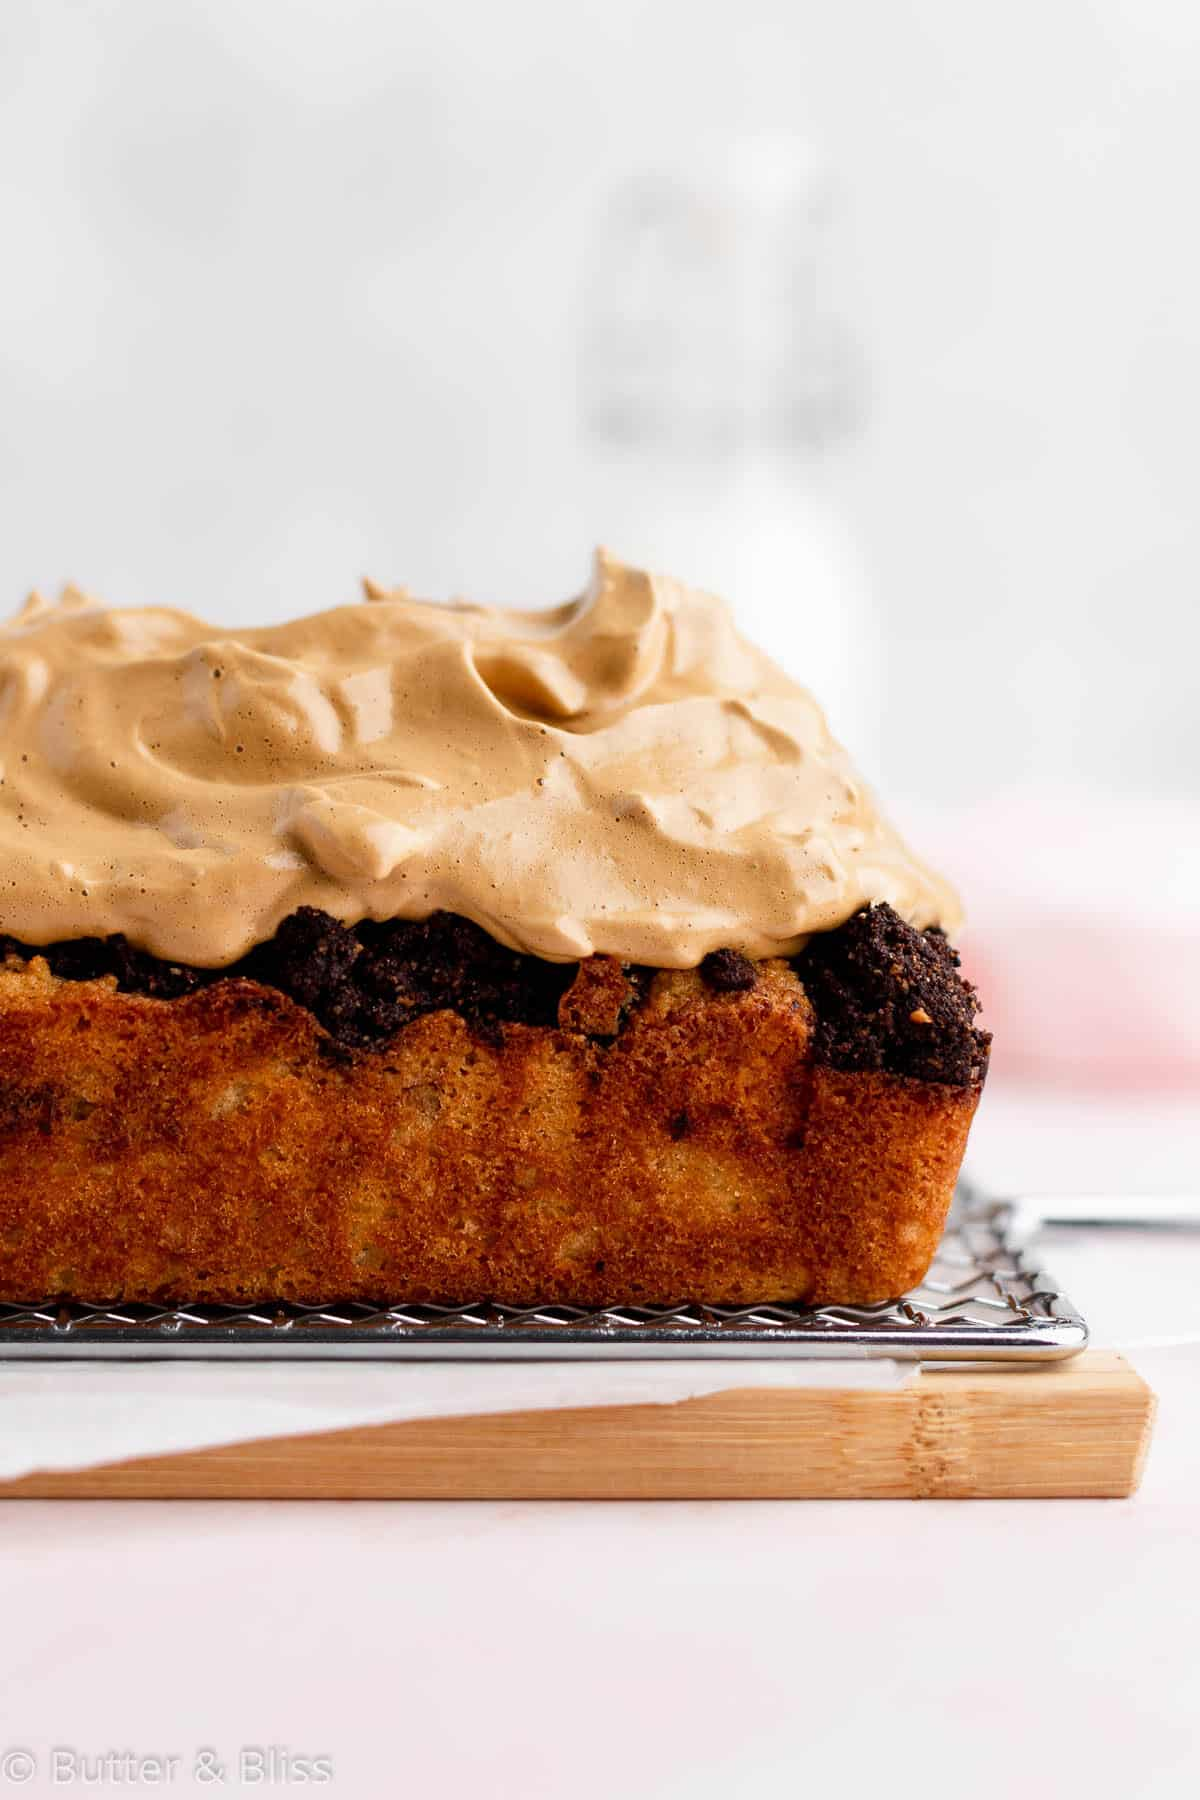 Side view of a gluten free mocha coffee cake with dalgona whip